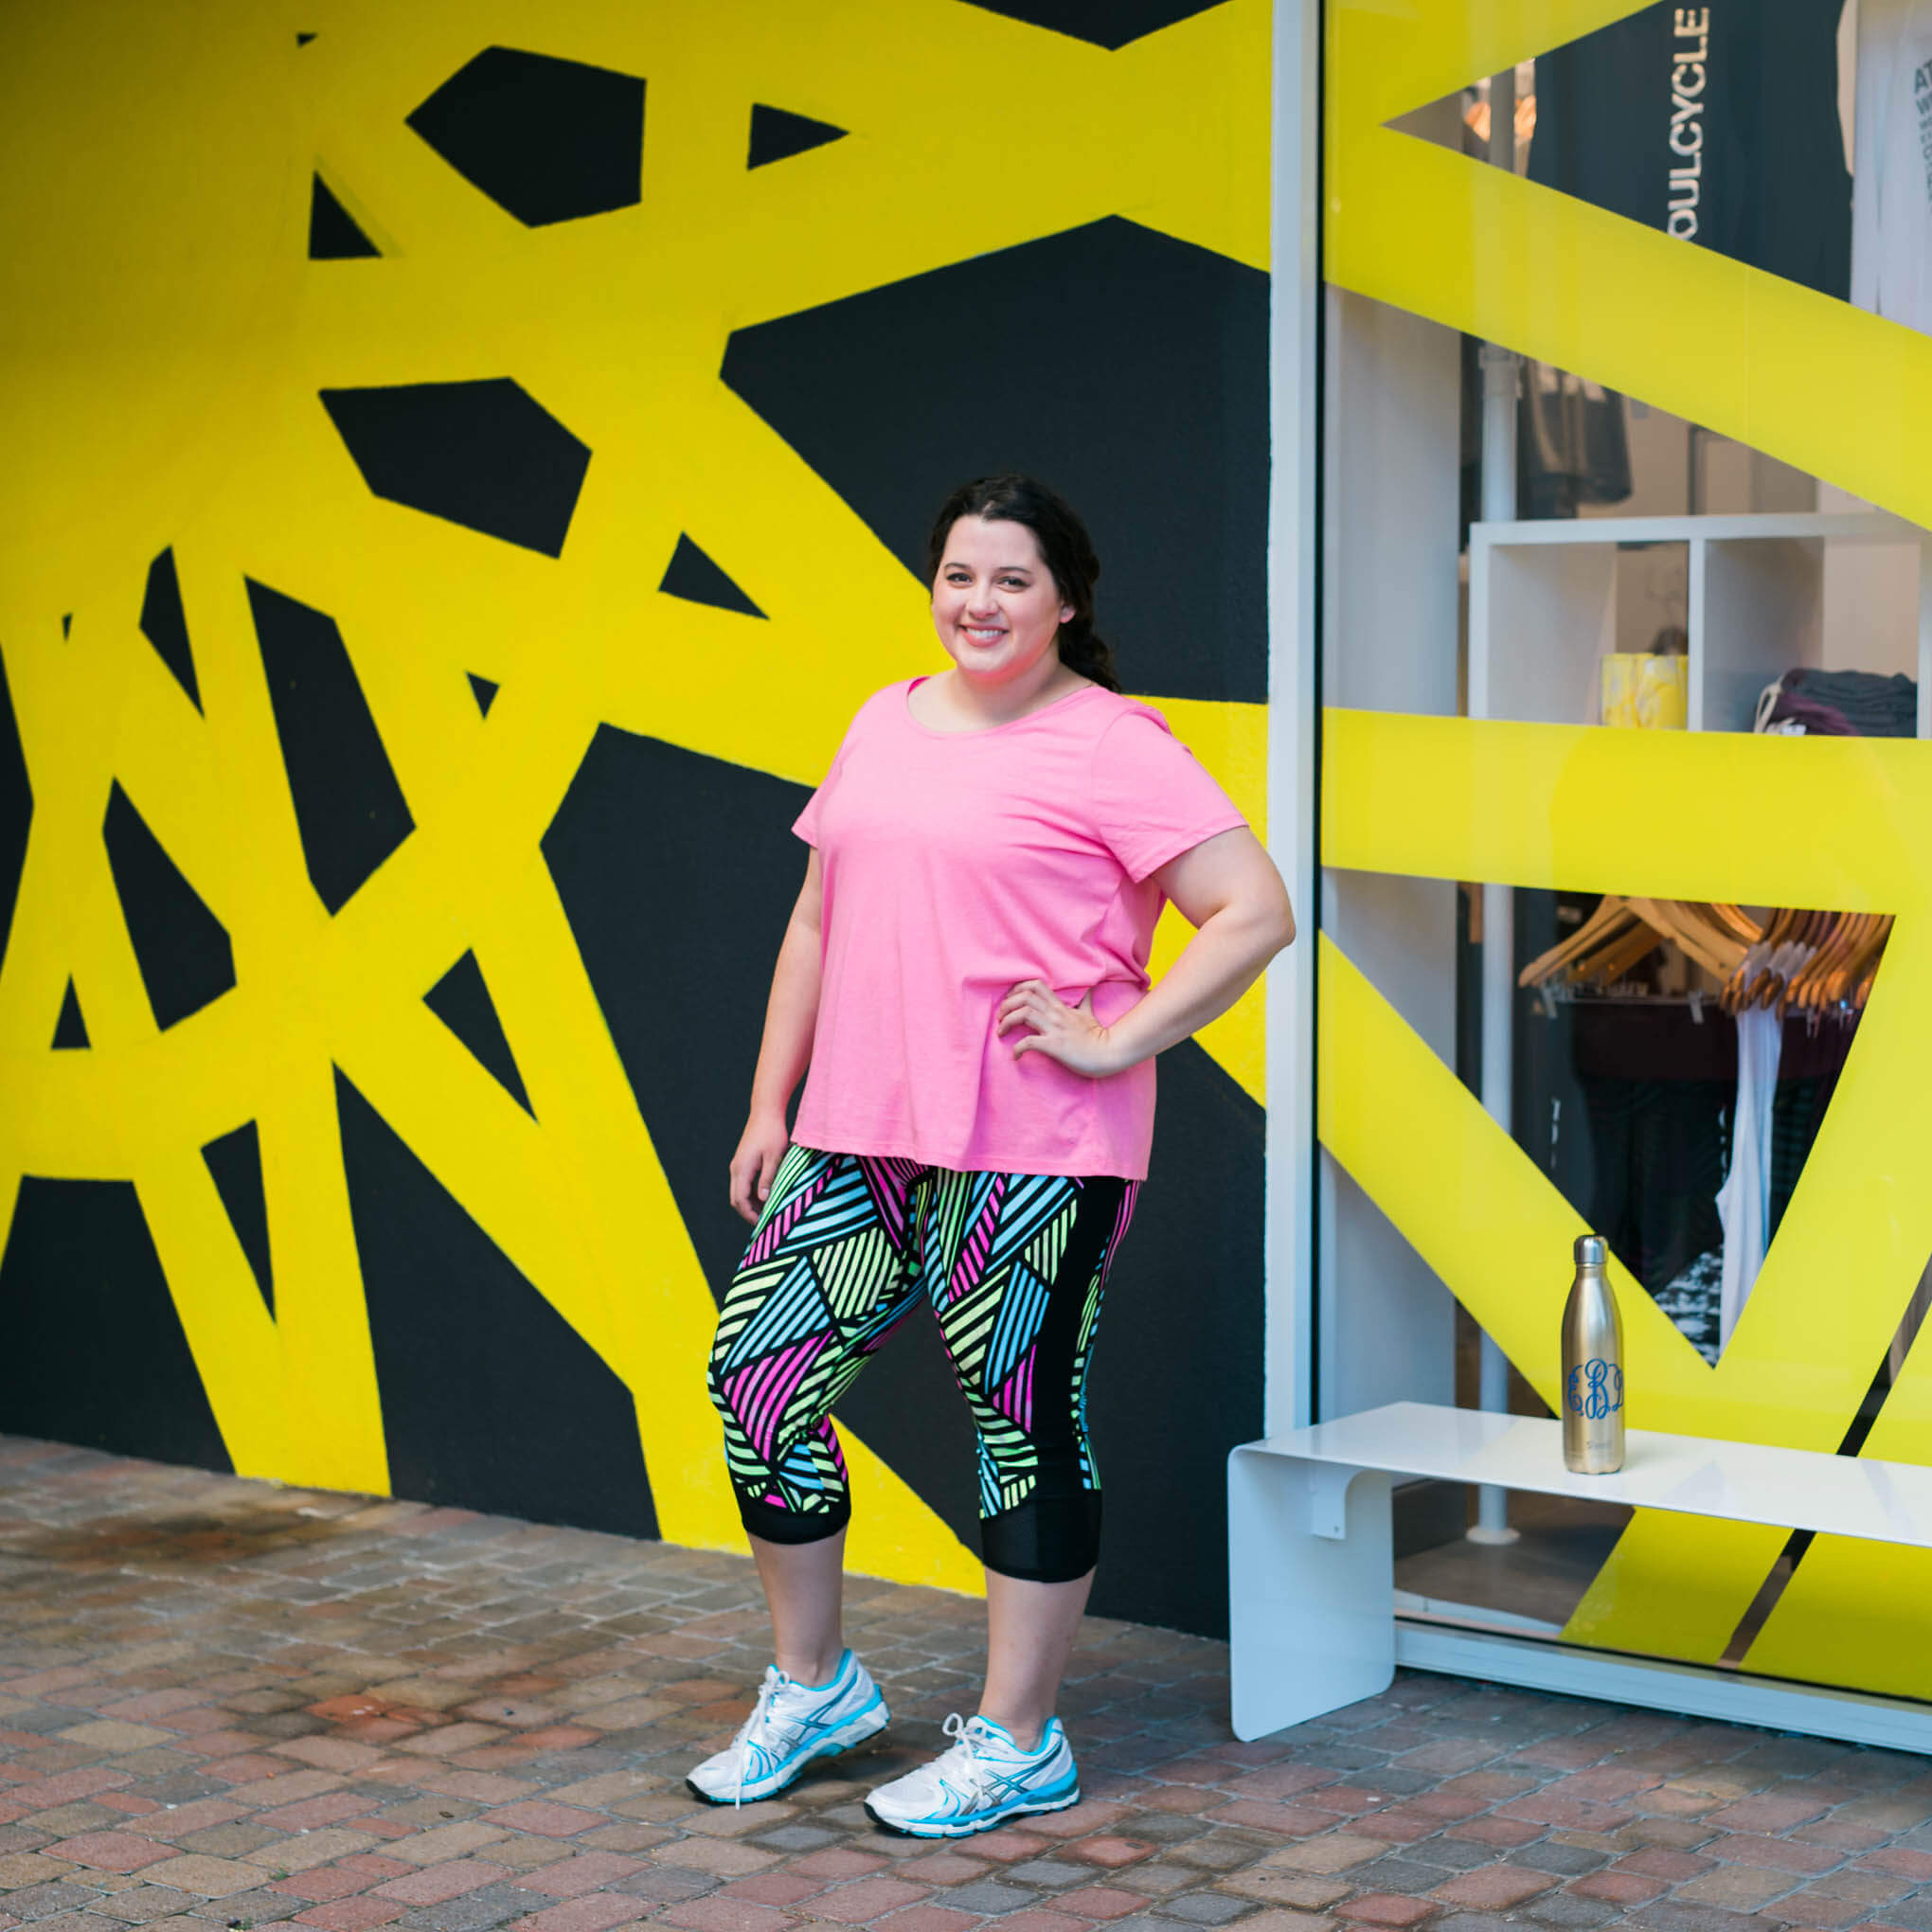 How to rock your first SoulCycle class, Something Gold, Something Blue fashion blog, How to survive first spin class, how to survive first SoulCycle class, Tips for spinning, tips for SoulCycle, Lane Bryant, Fabletics, Swell, Asics